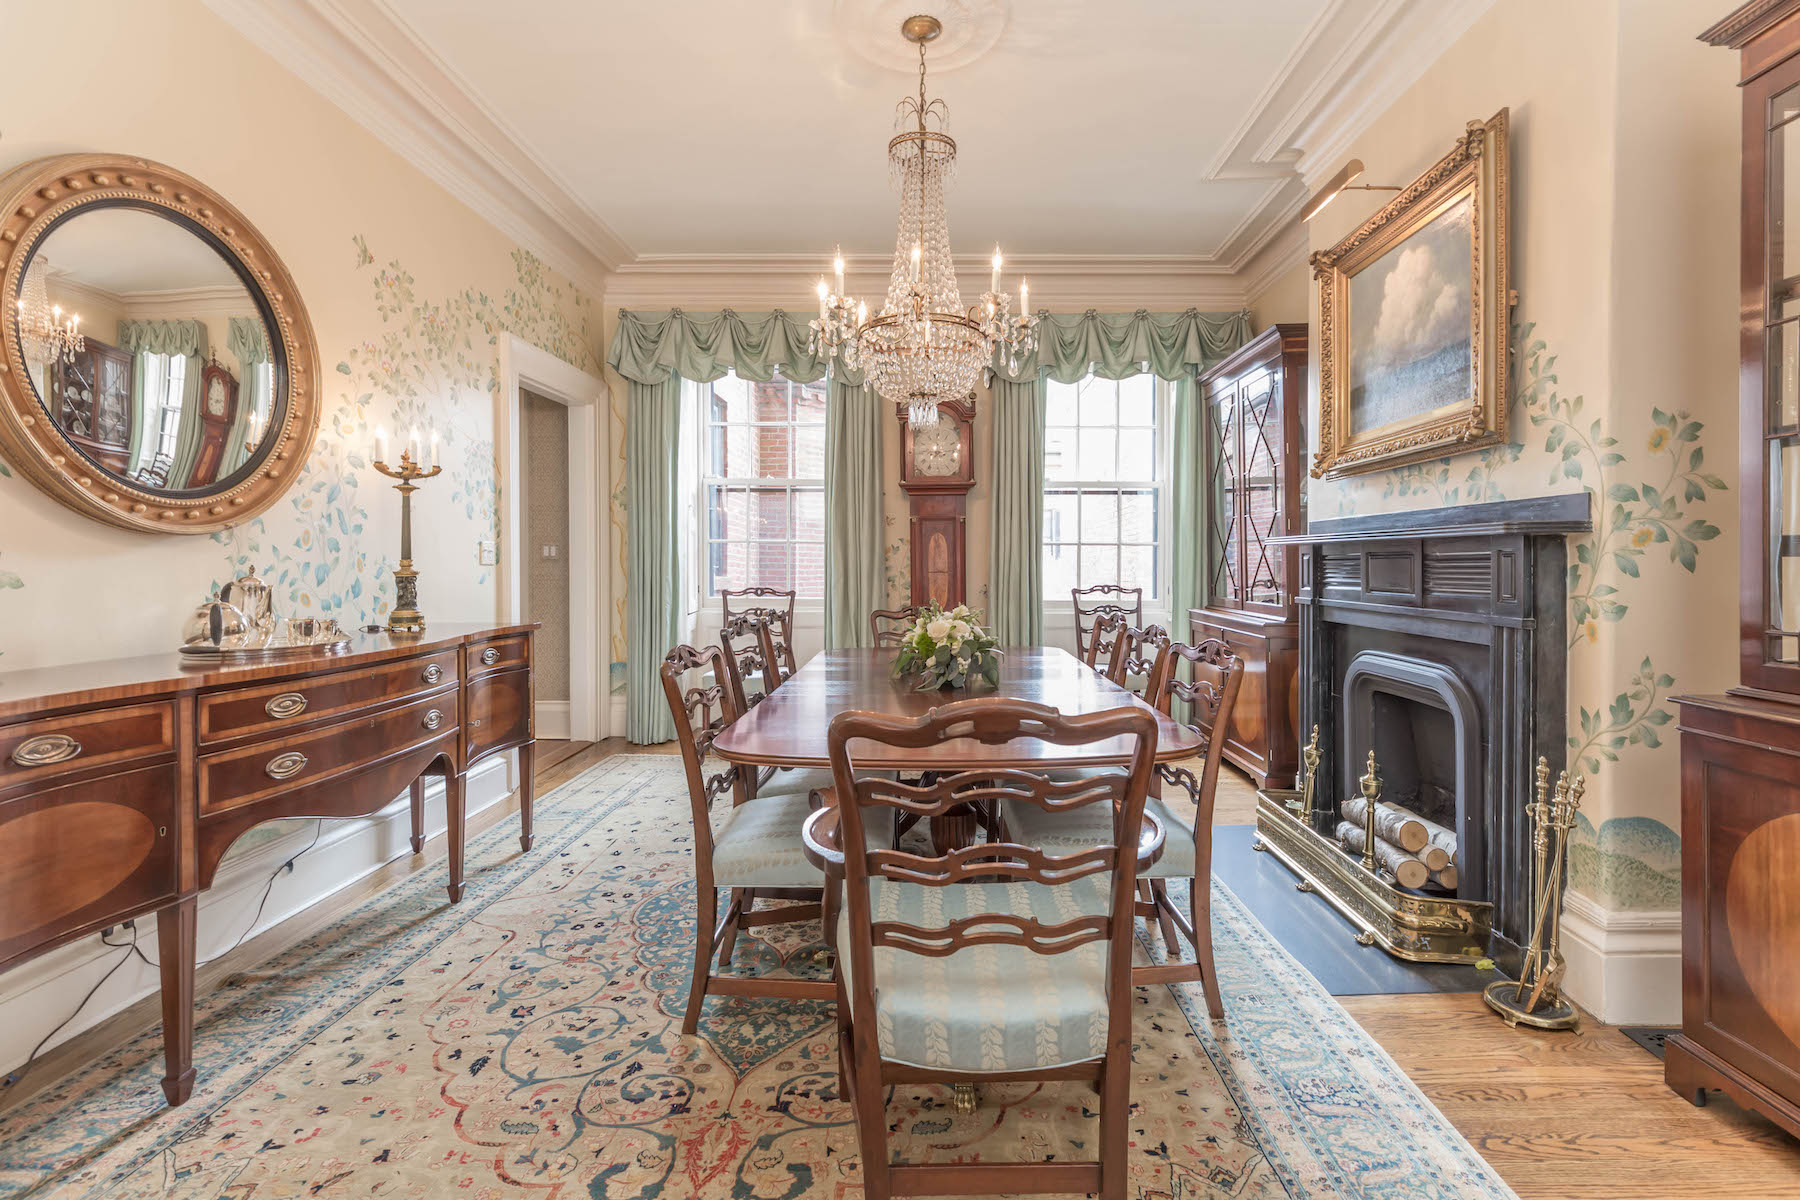 Single Family Home for Active at Refined Brick Townhouse On Beacon Hill 20 West Cedar Street Boston, Massachusetts 02108 United States